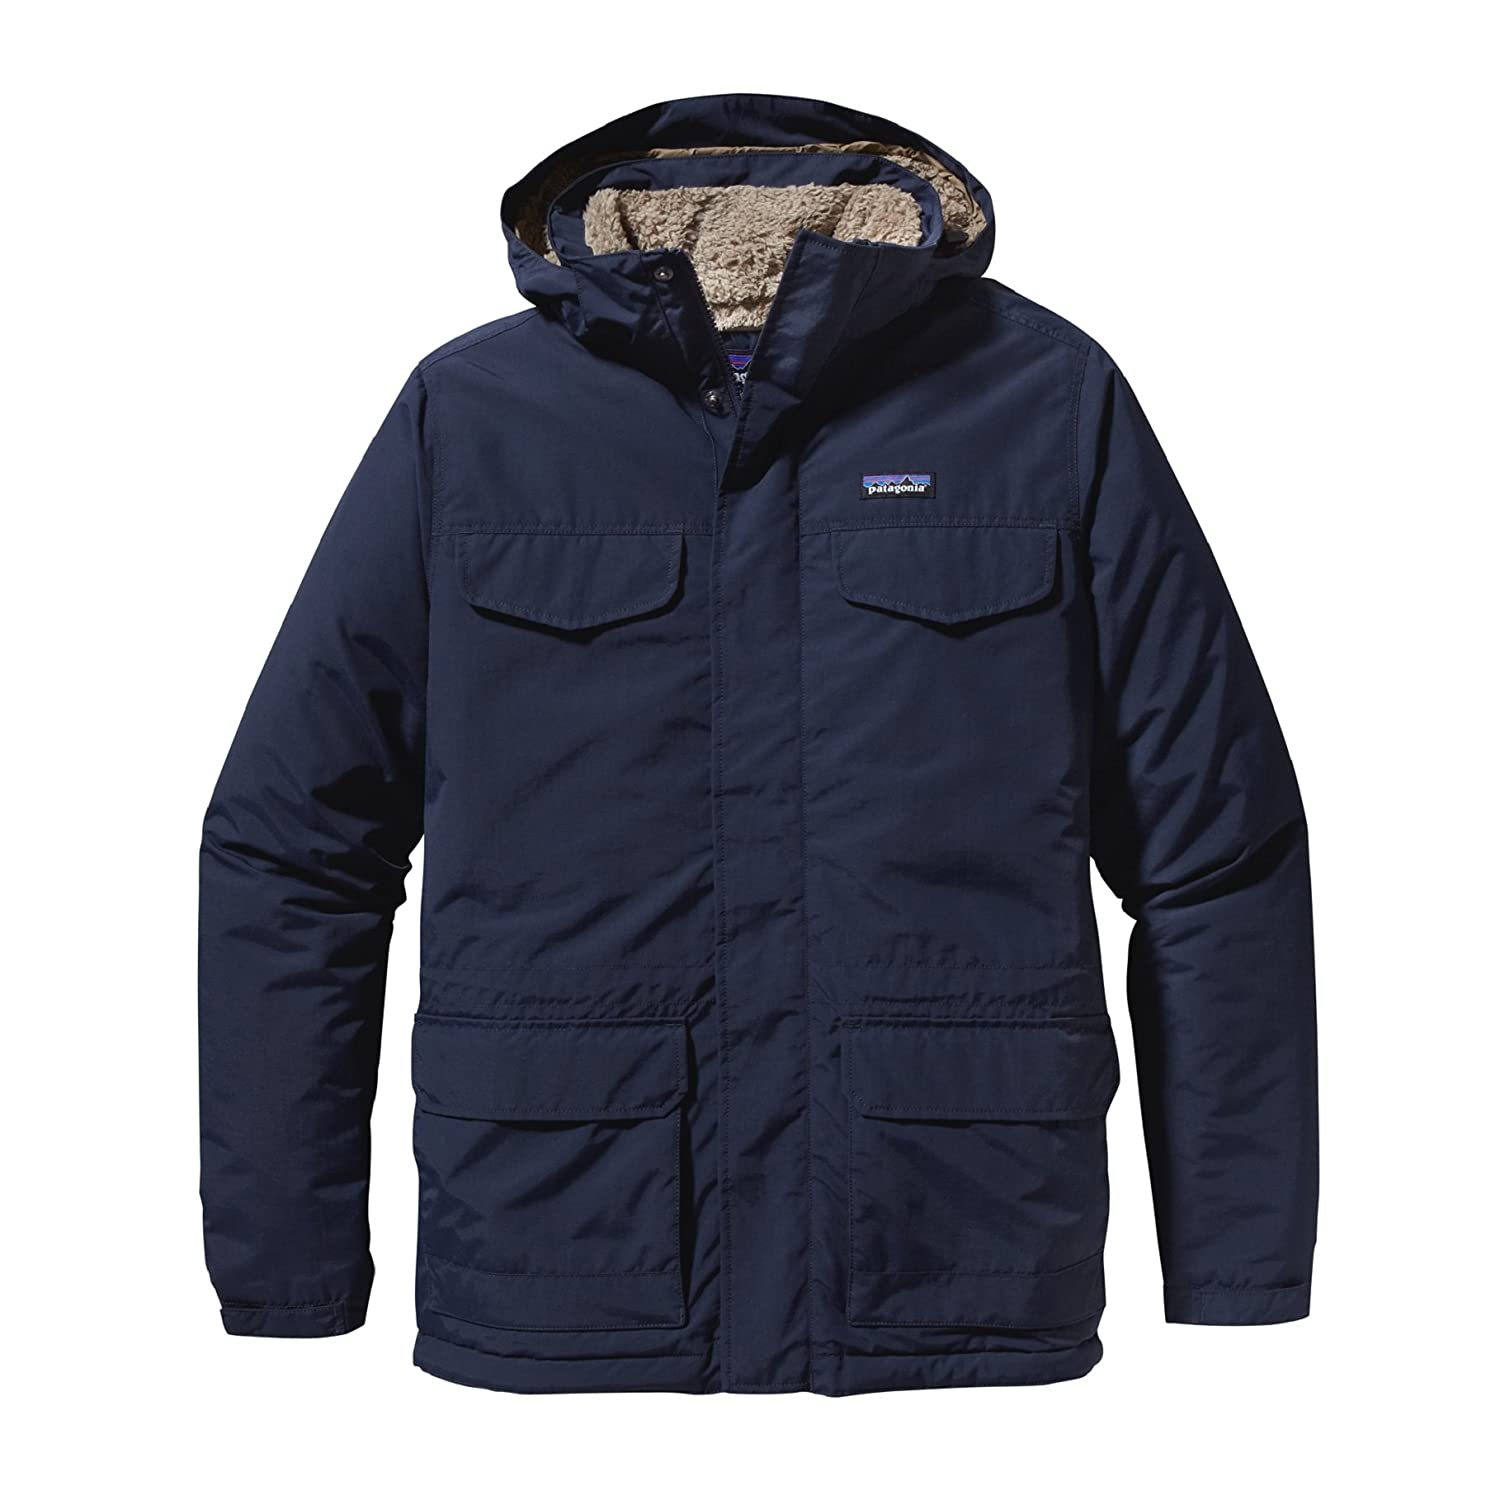 Patagonia Canvas Hoody Lined Jacket Men – Winterjacke günstig bestellen